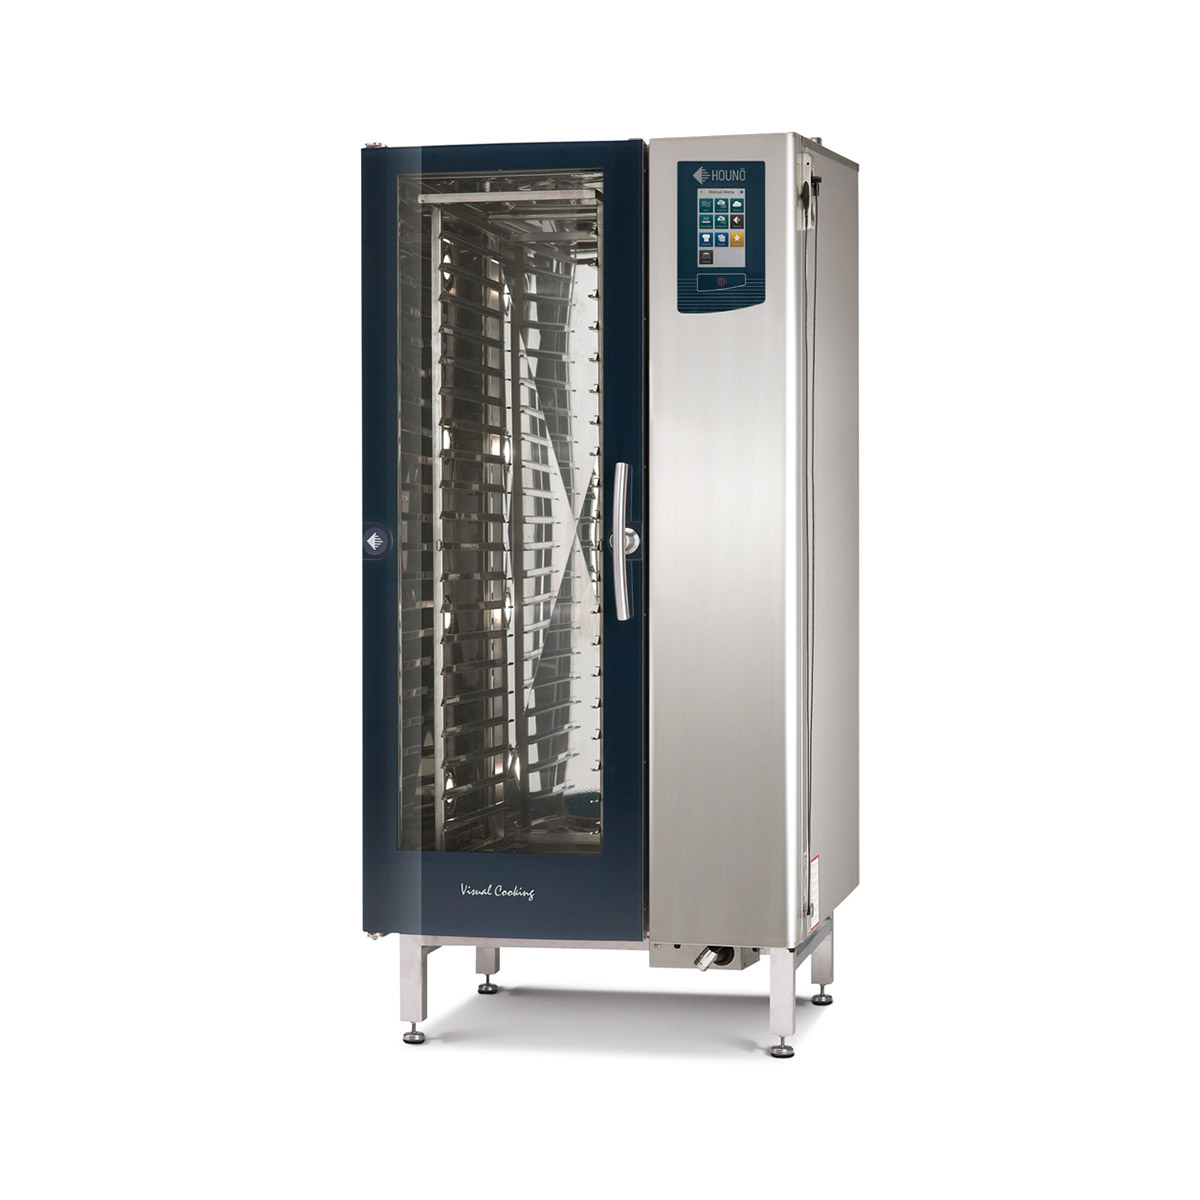 Houno C & CPE 1.20 Roll-In Combi Oven Electric 20 Tray Oven – 4 Year Warranty